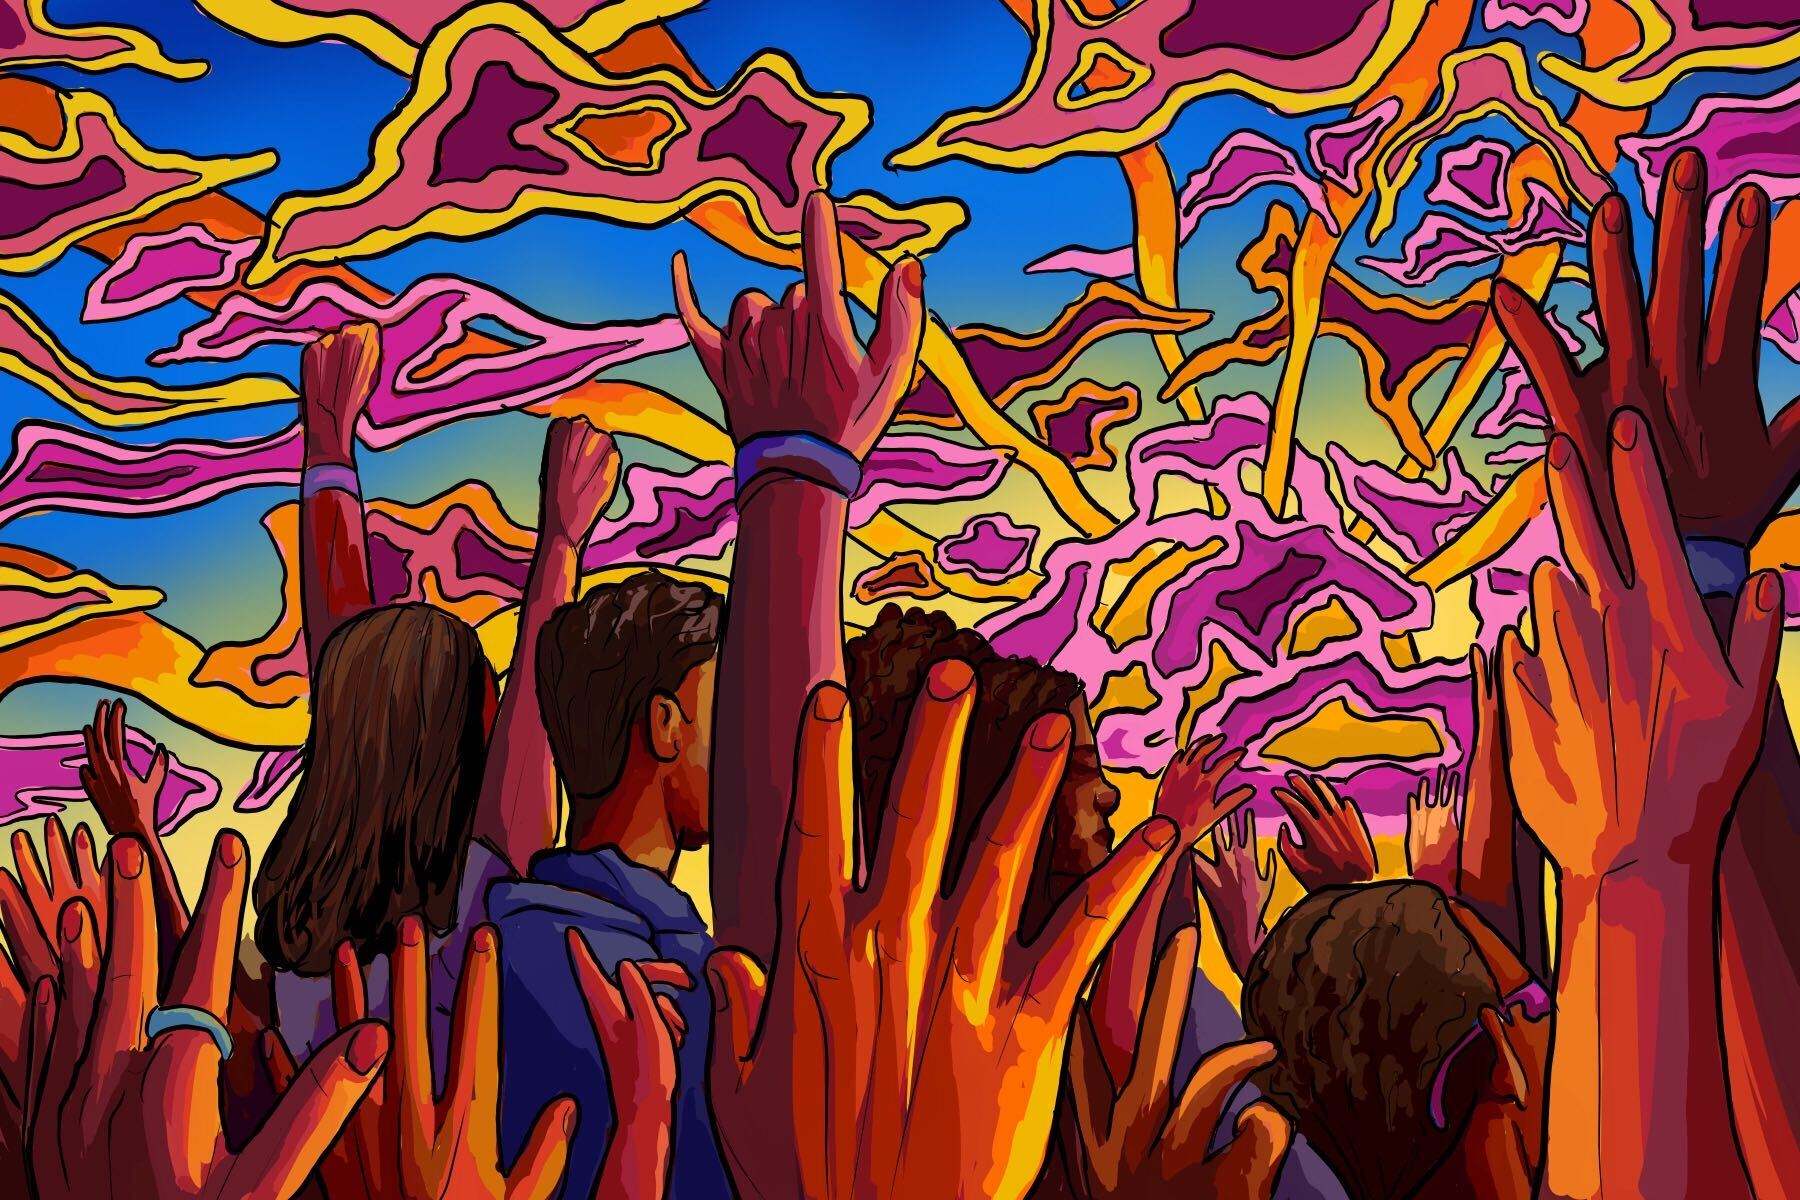 Illustration of people experiencing psychedelic drugs